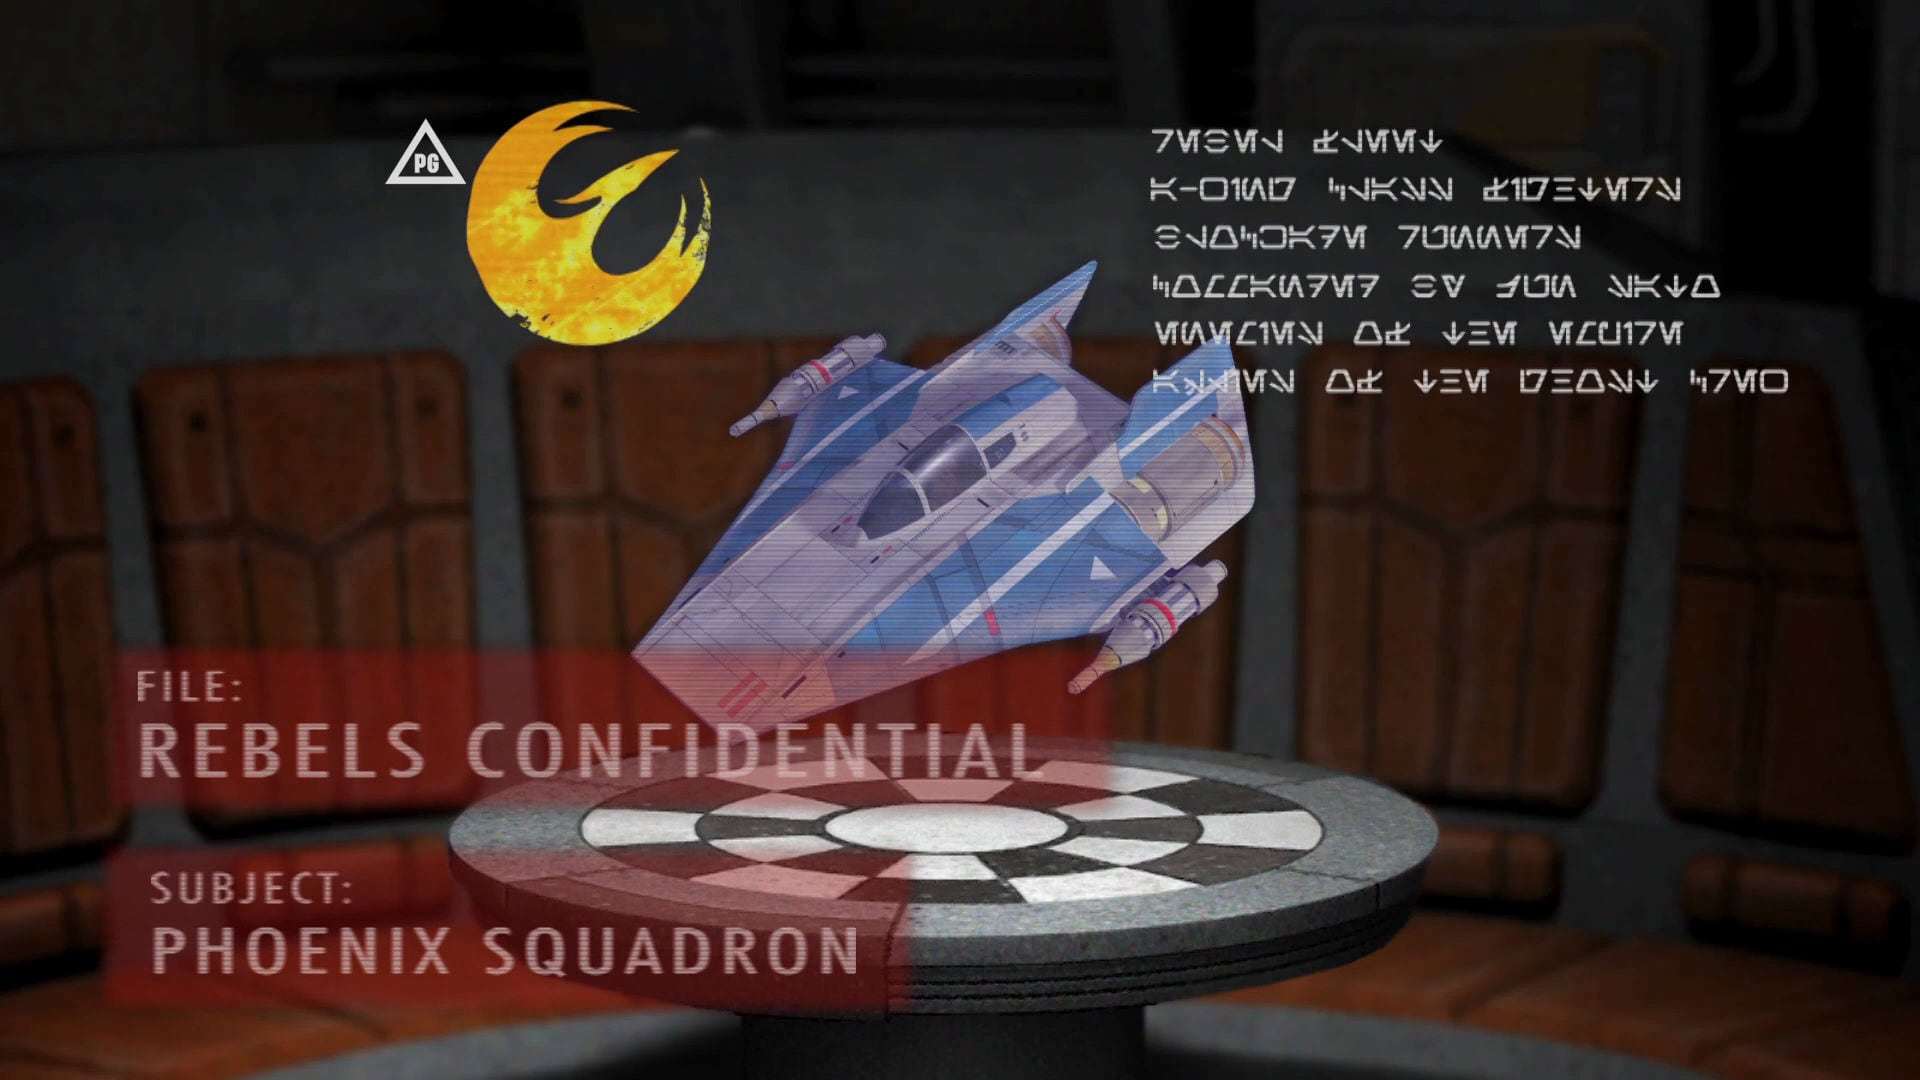 Rebels Confidential: Phoenix Squadron